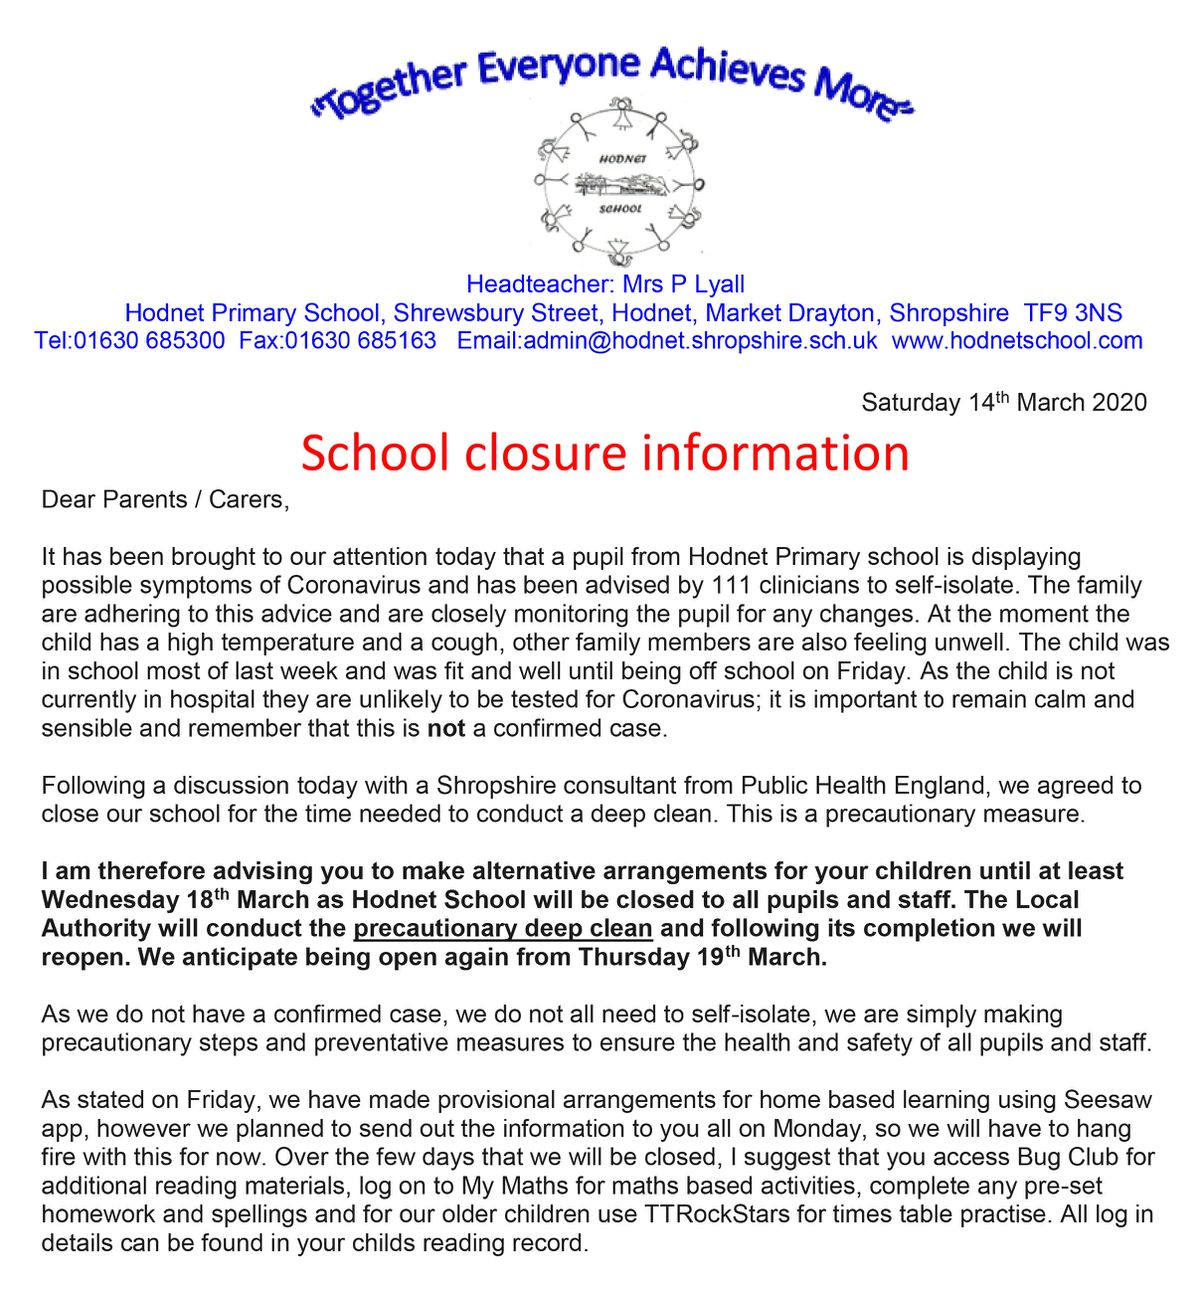 The letter from Hodnet Primary School to parents explaining why the school is shut for a deep clean